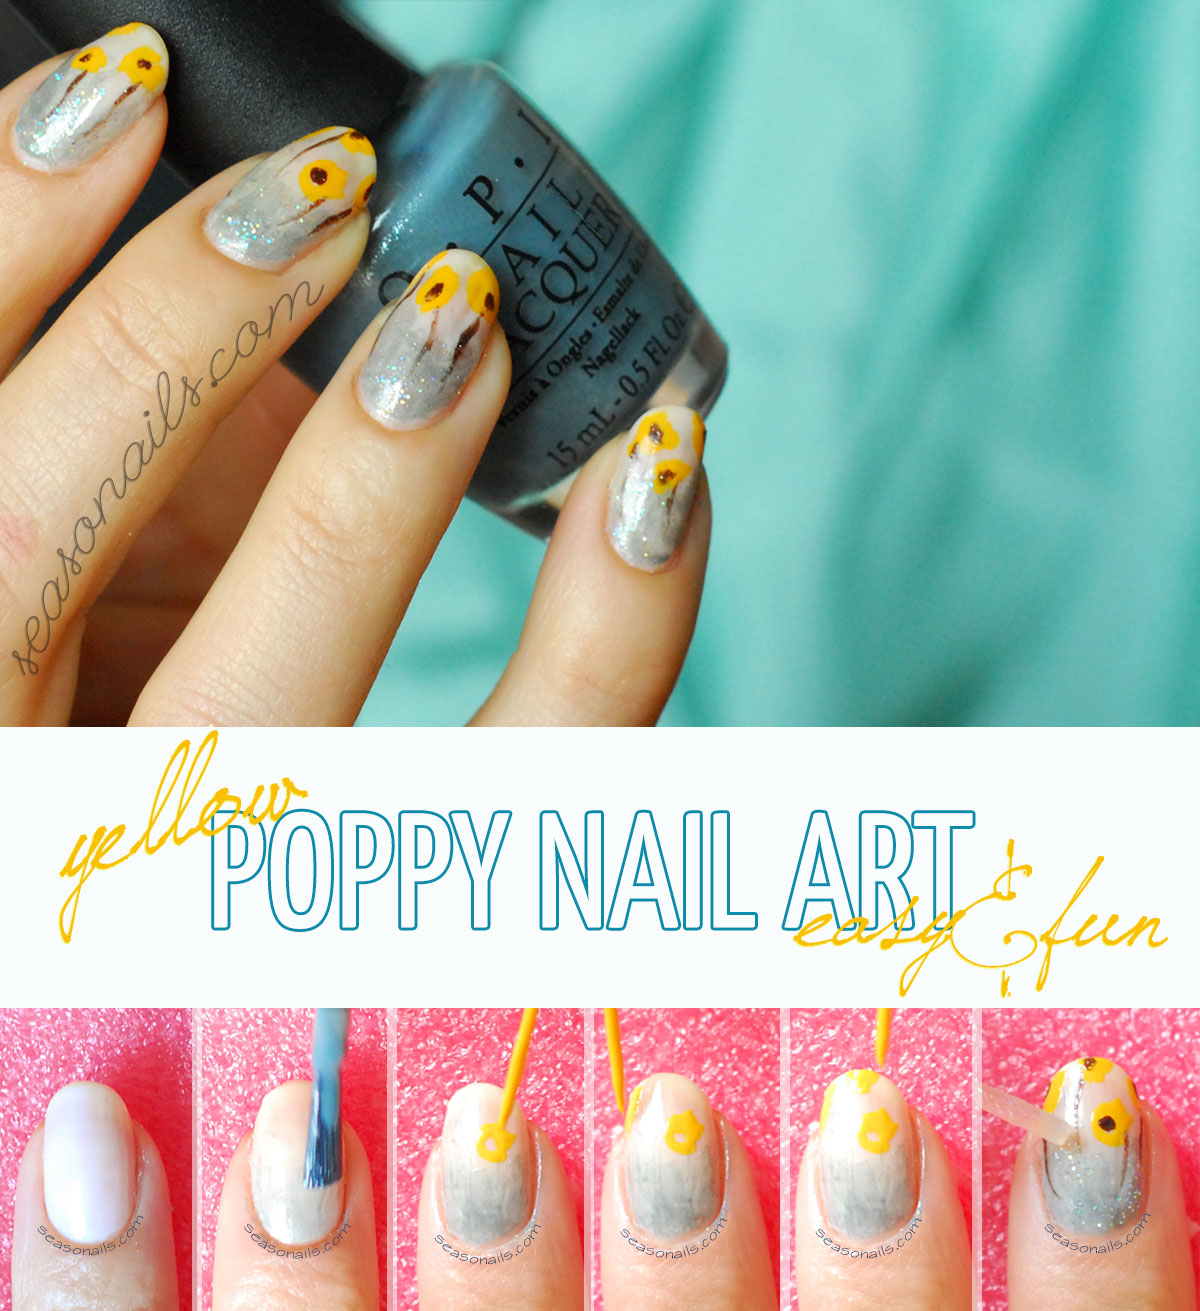 how to poppy spring summer nail art tutorial